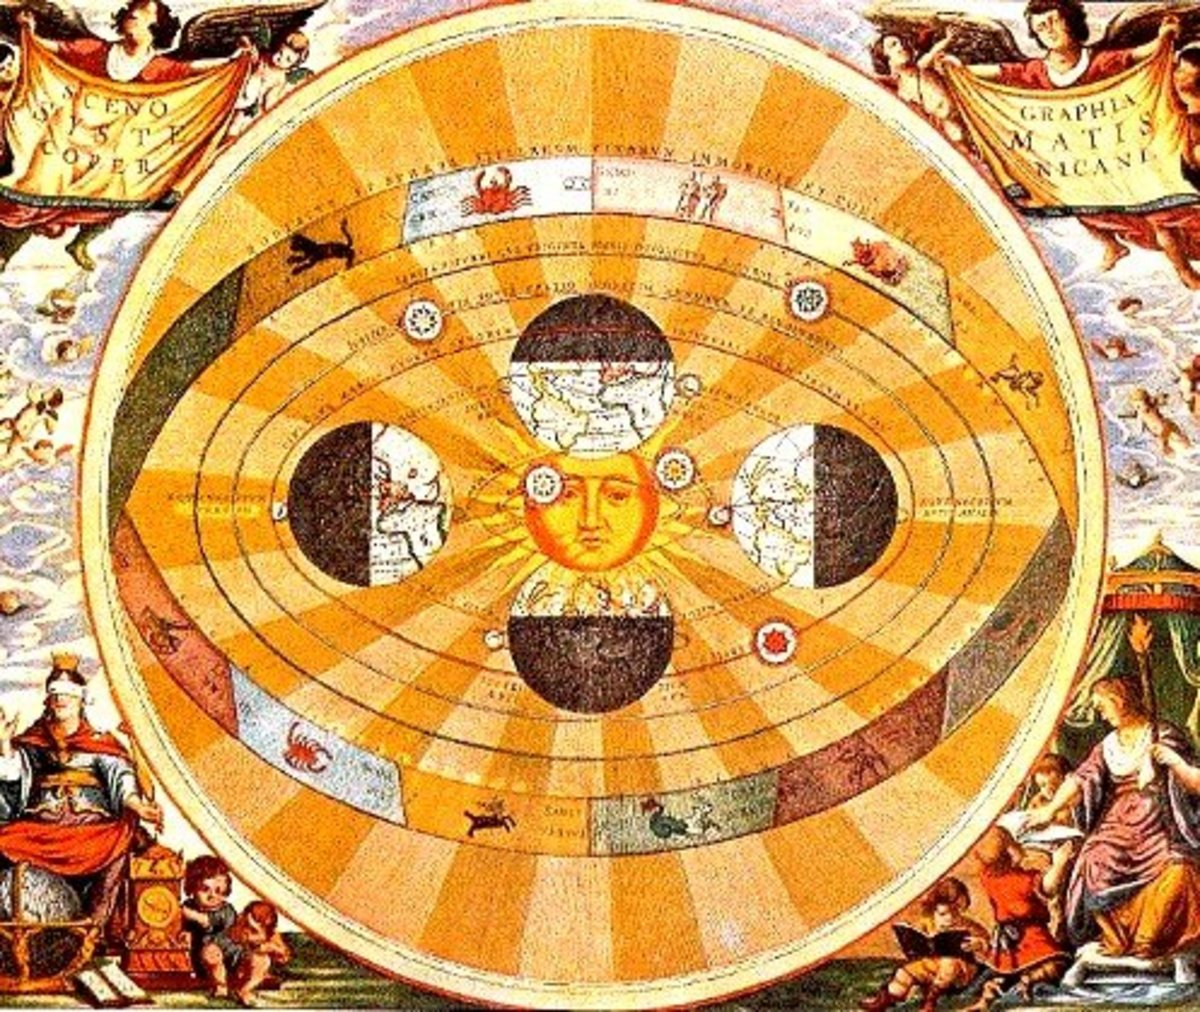 The Heliocentric Theory of Nicolaus Copernicus